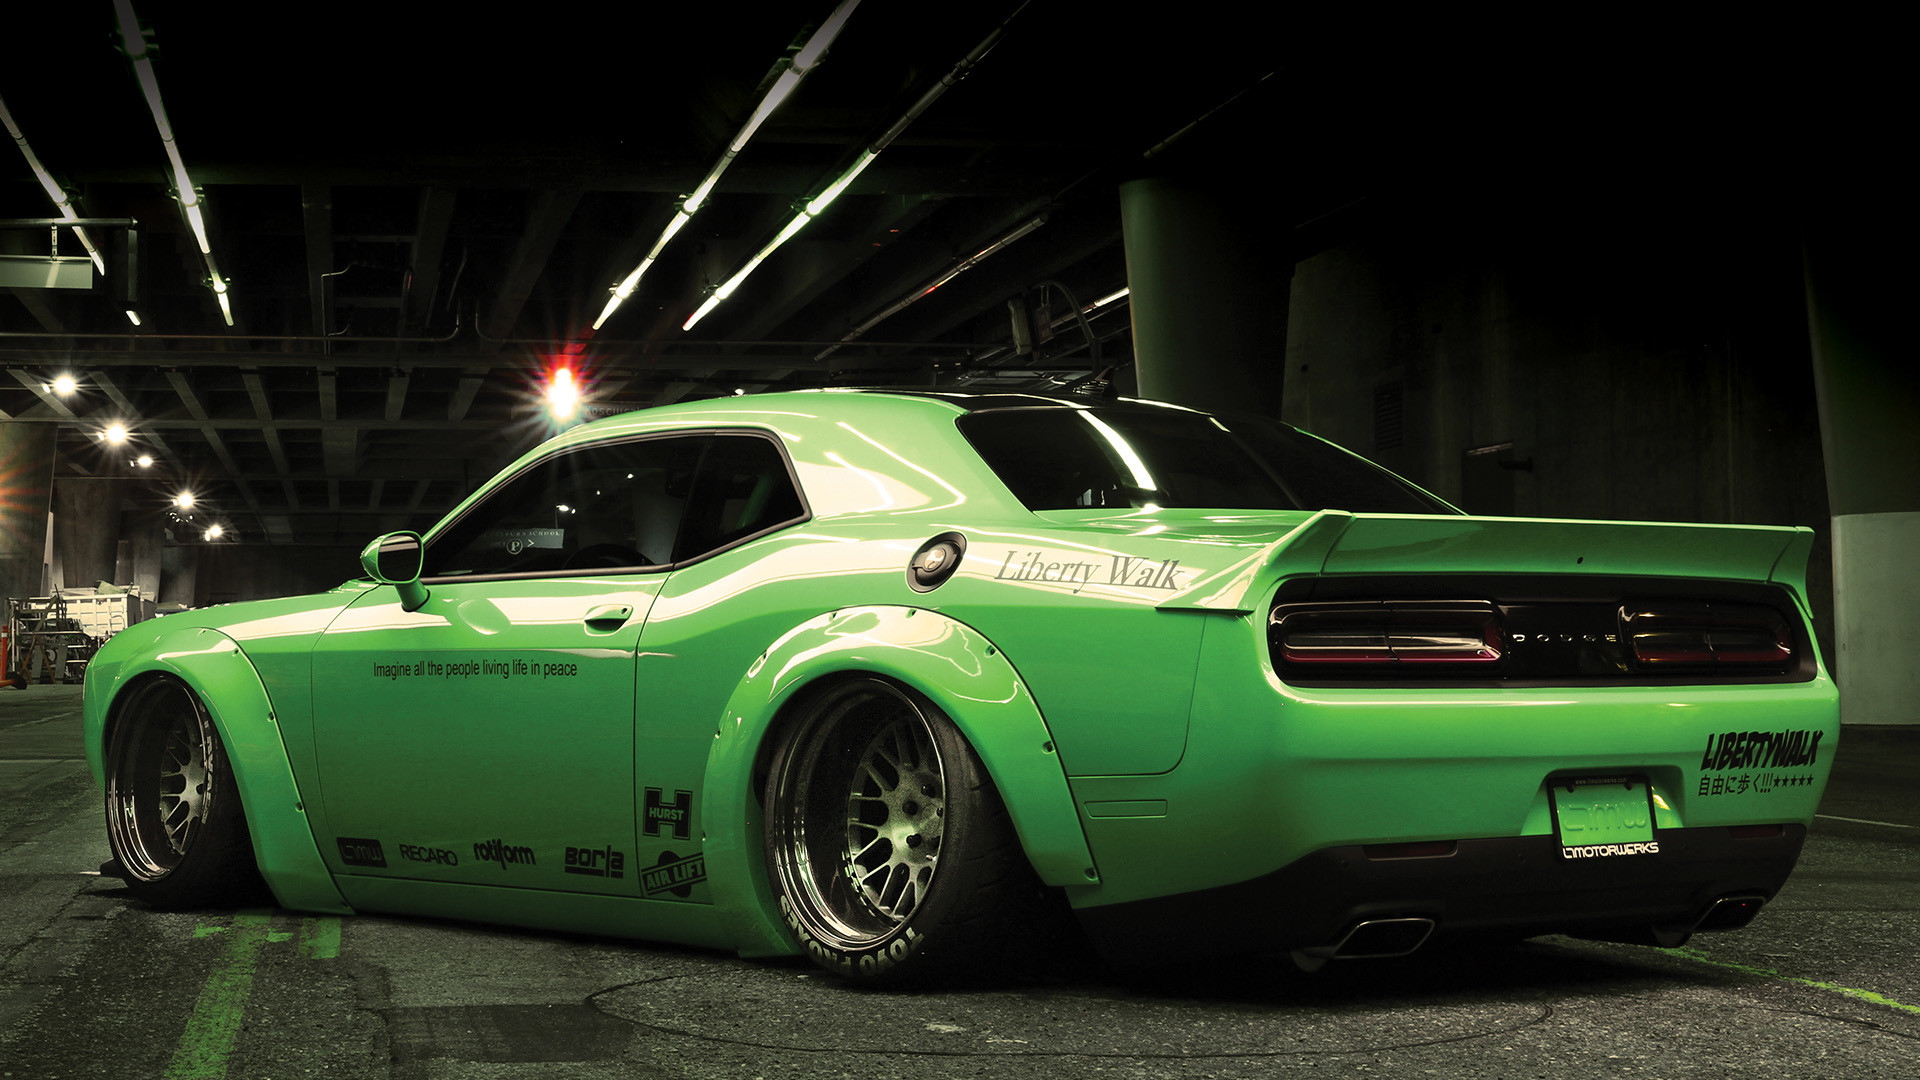 1920x1080 DUB Magazine - Project Hulk: Liberty Walk Challenger